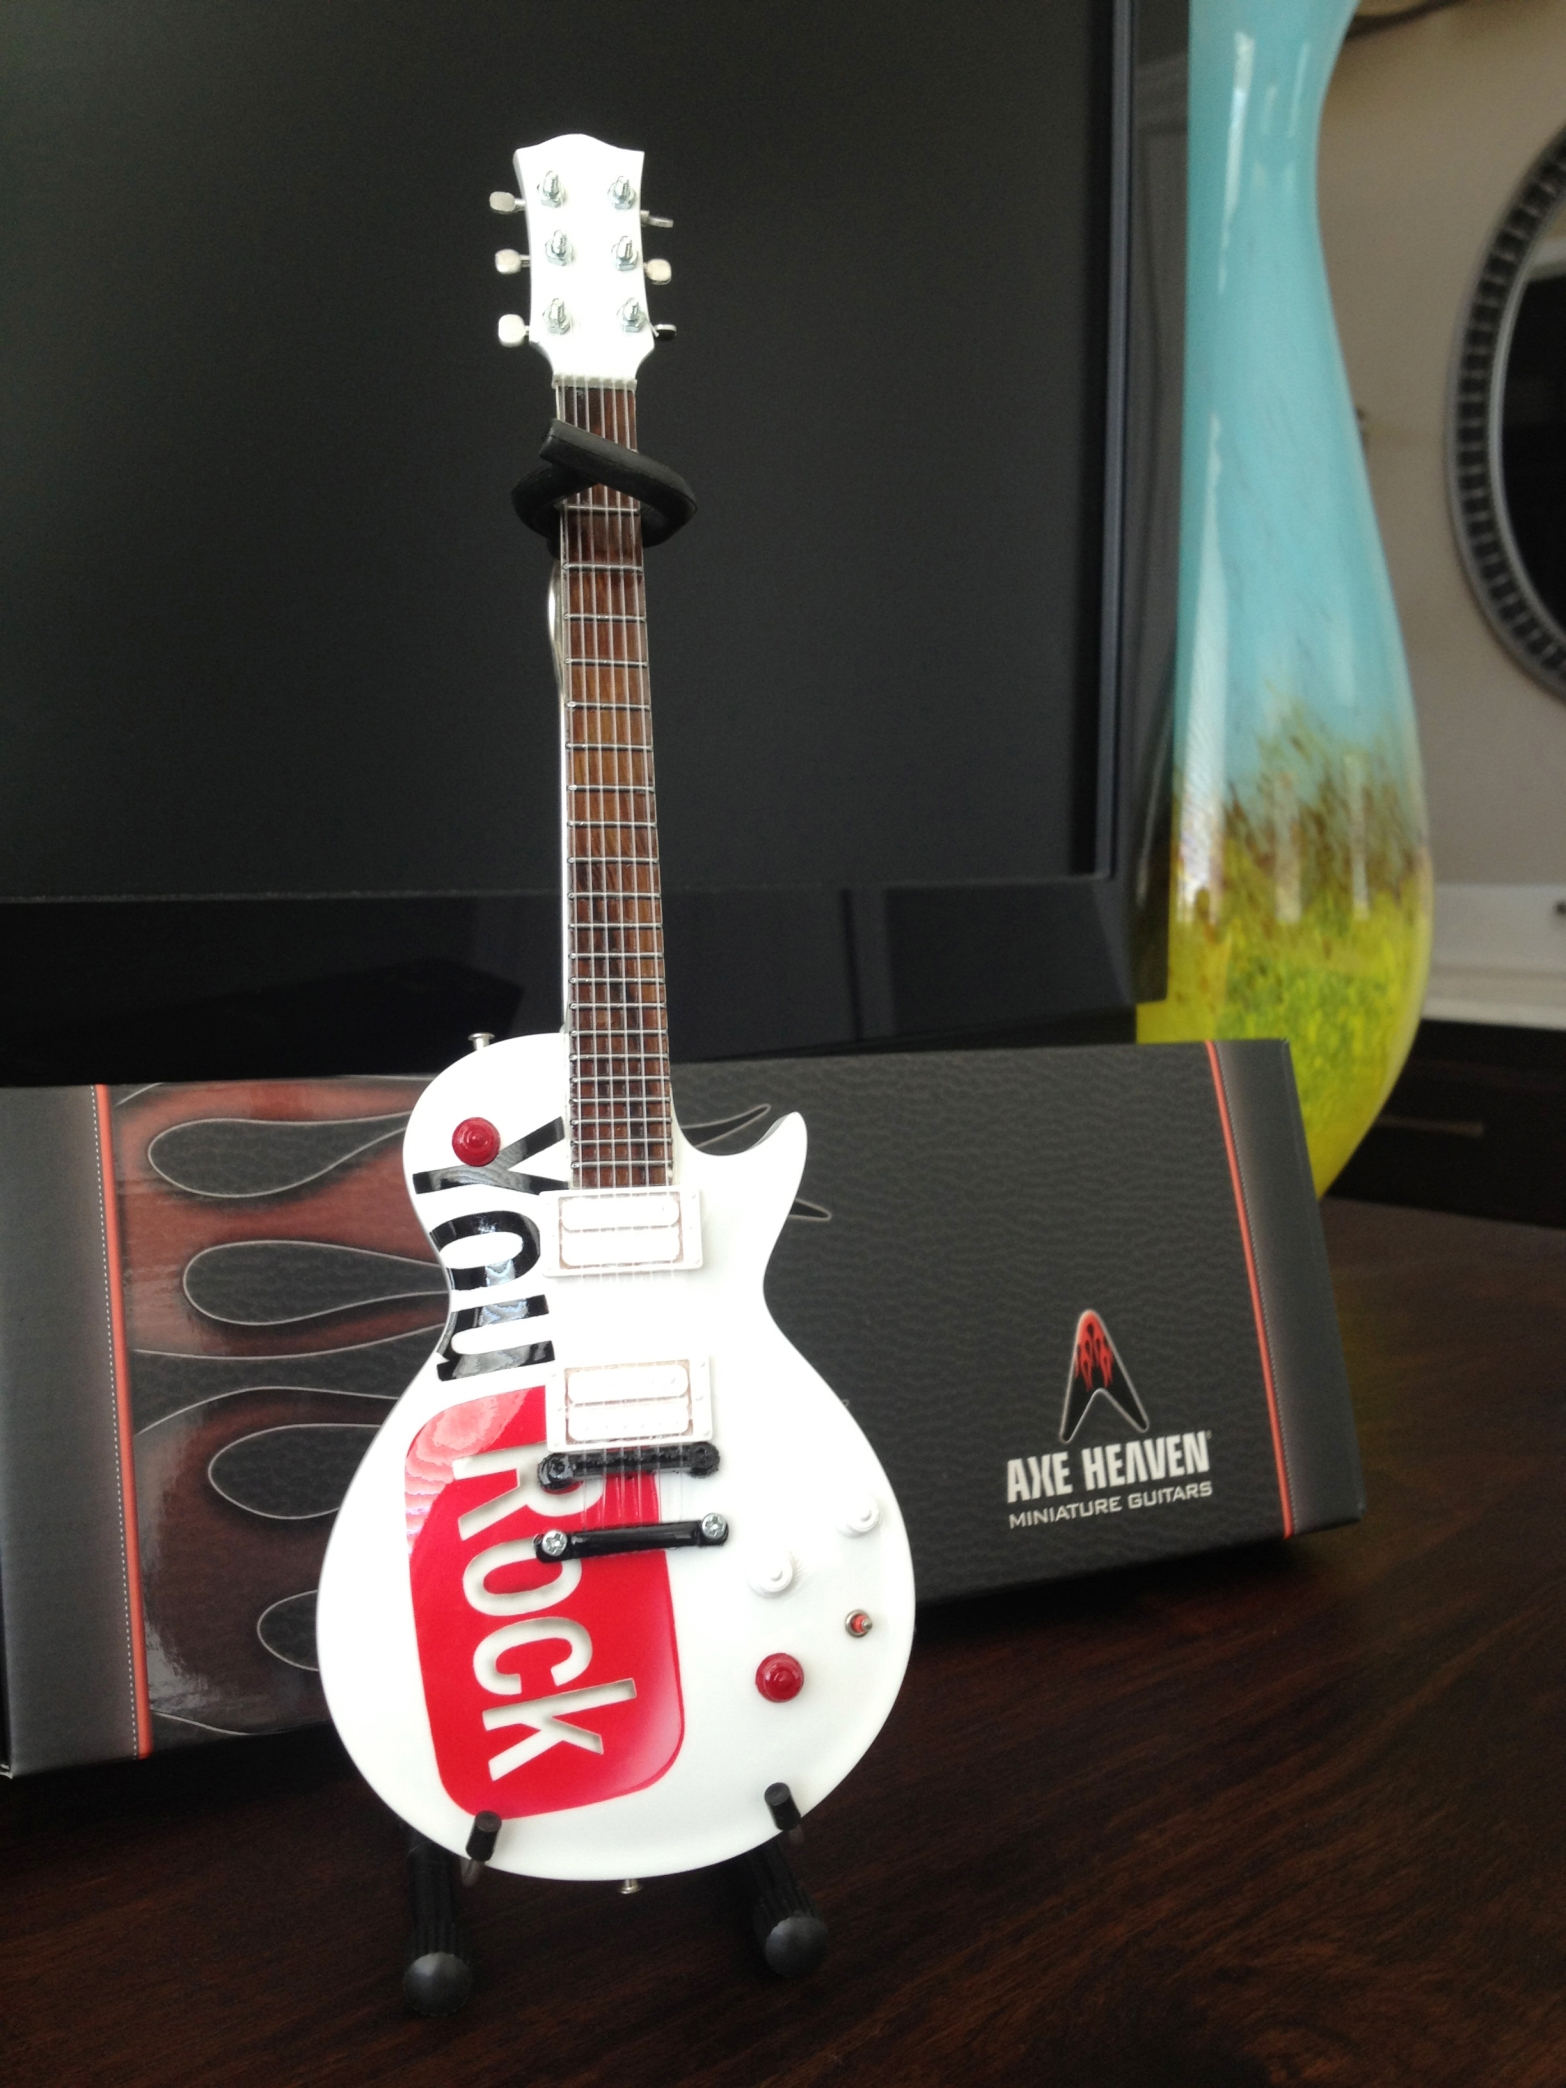 Google YouRock Employee Award Mini Guitar